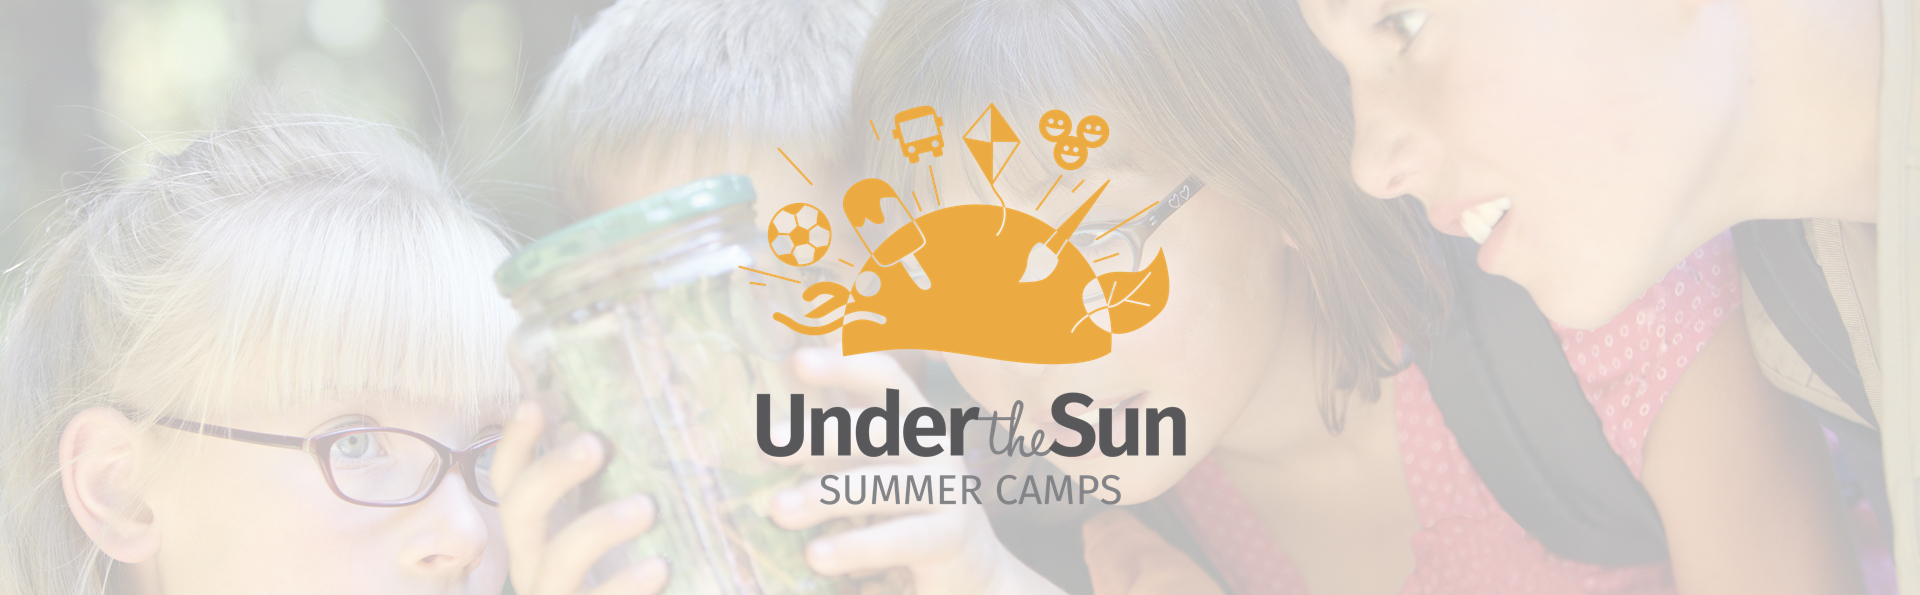 Under the Sun Summer Camps.